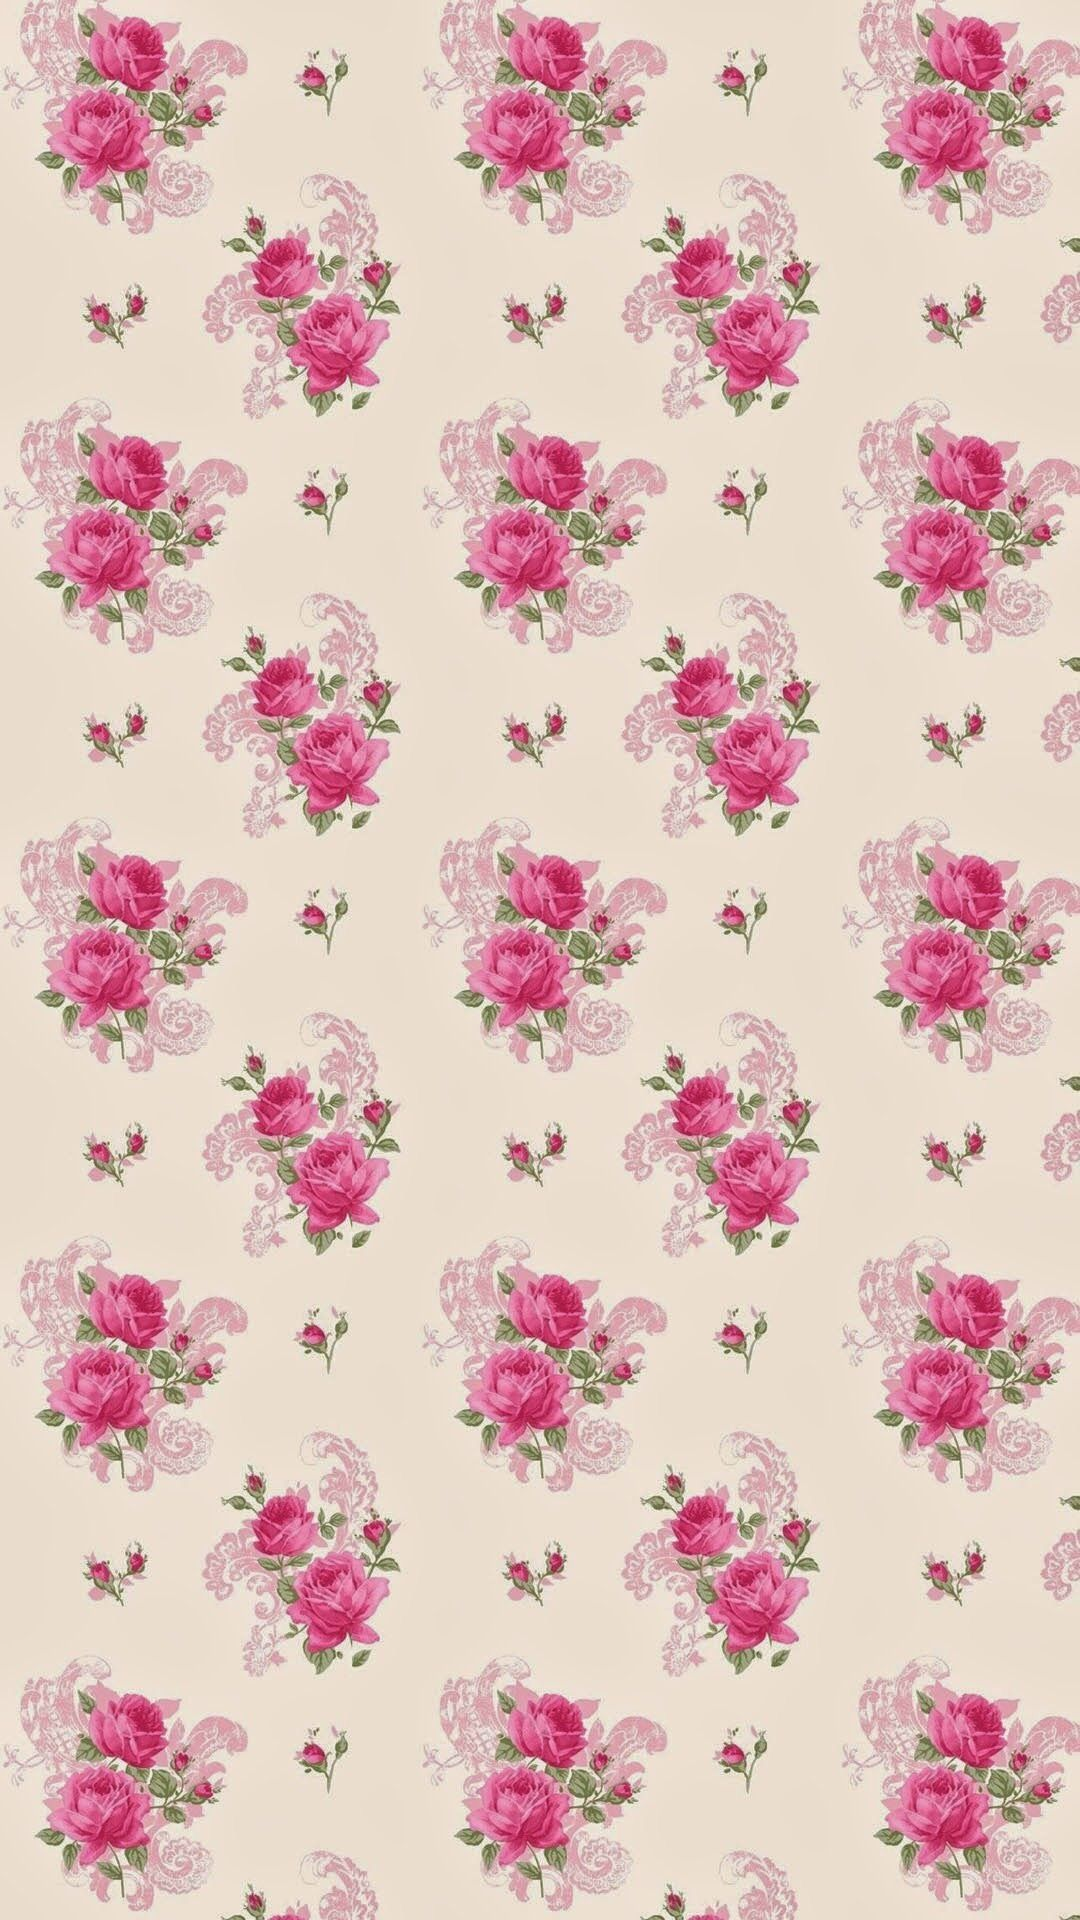 Pin by lesley smid on rose cottage pinterest wallpaper flowers